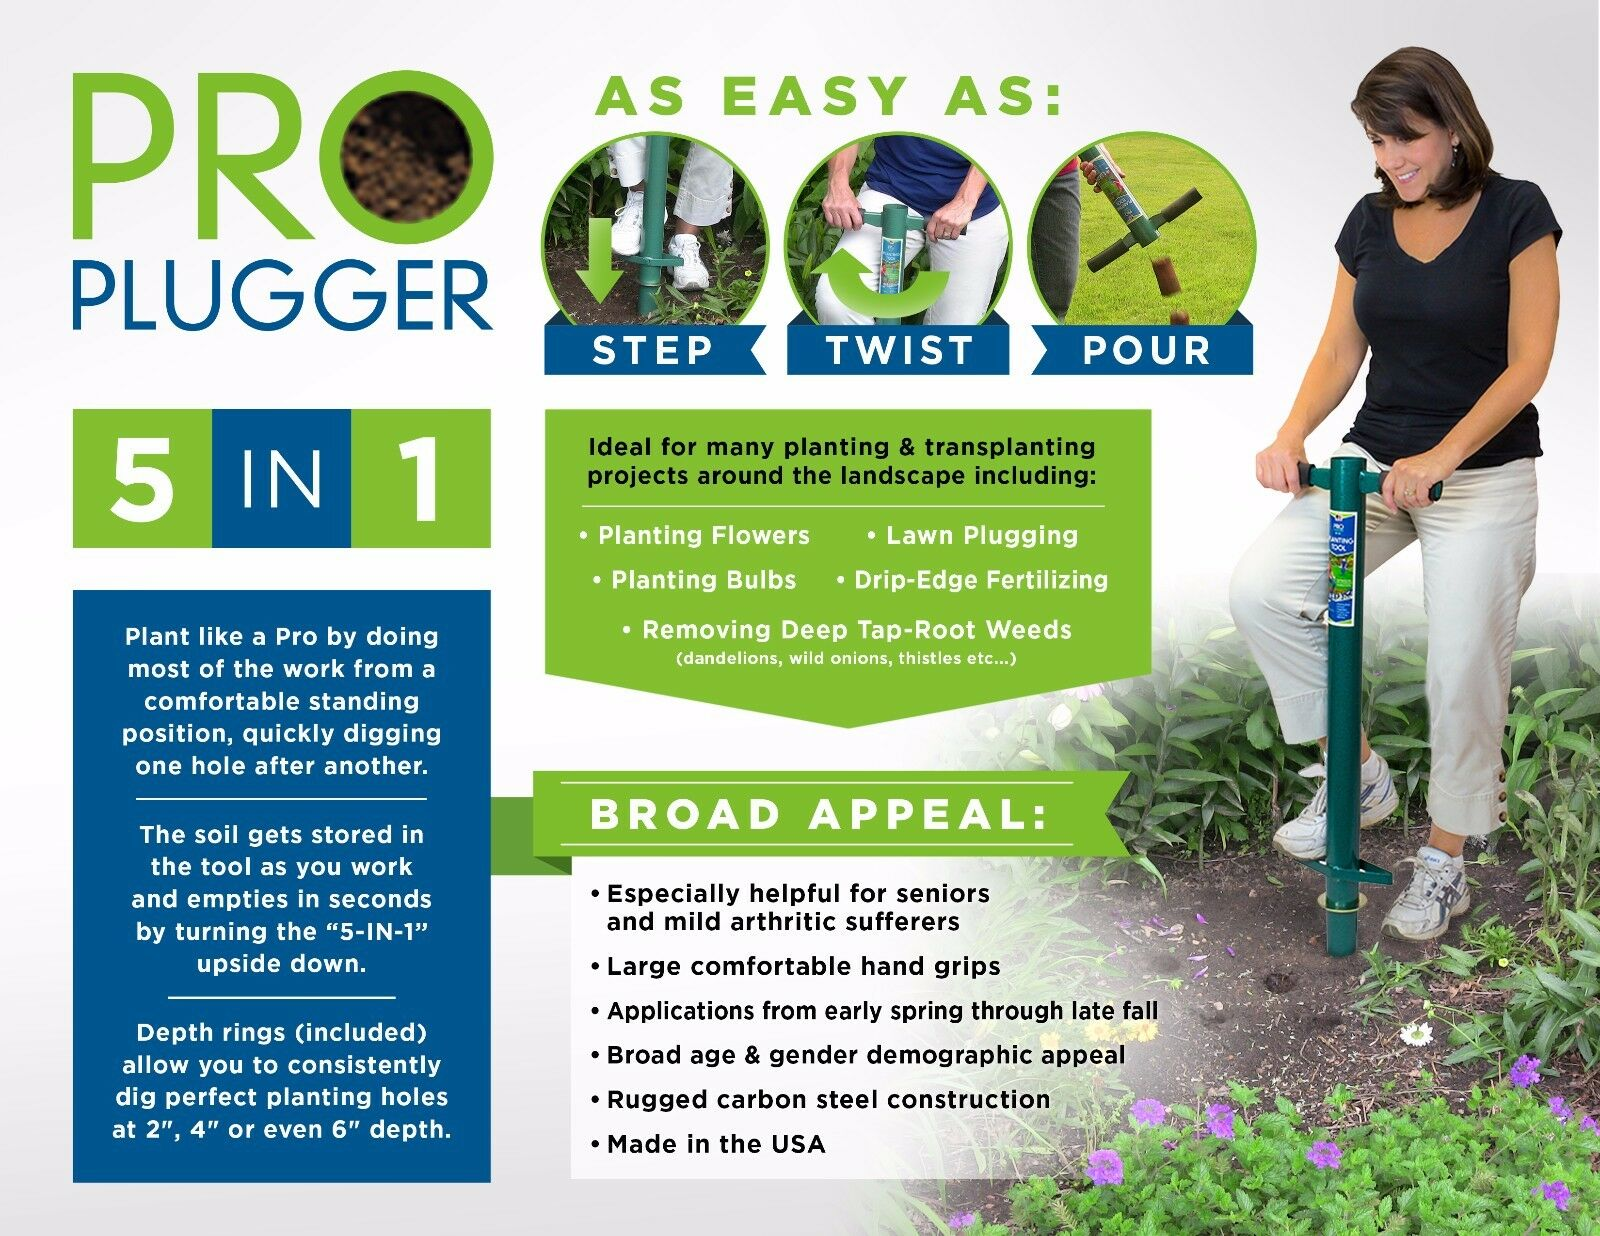 ProPlugger Five in 1